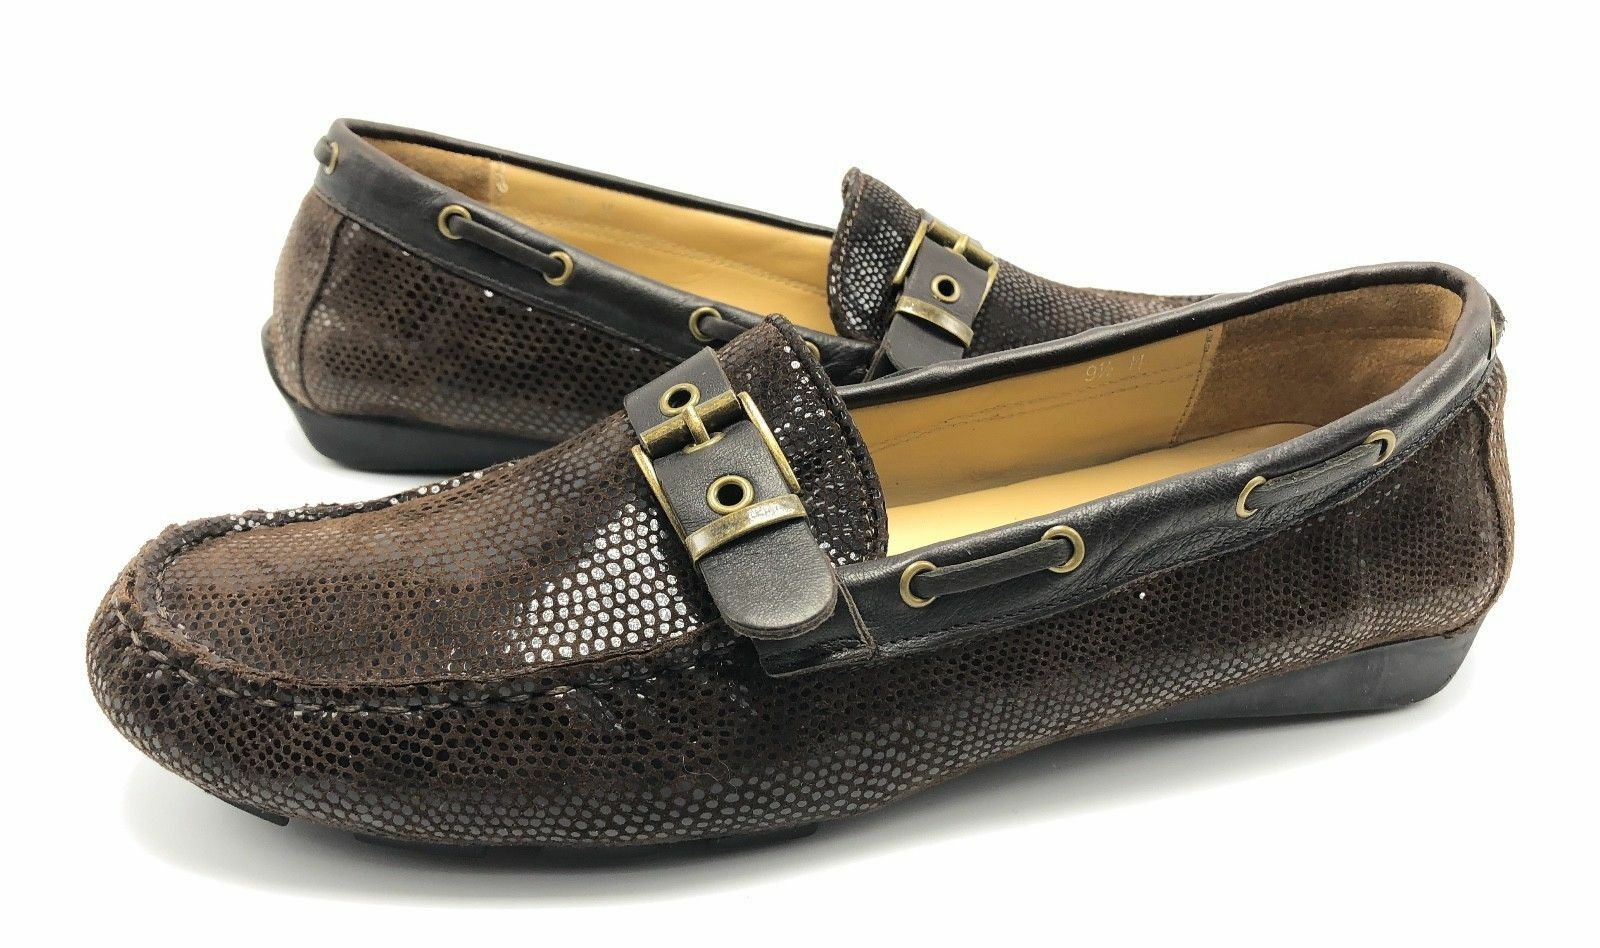 Vaneli Womens 9.5M Brown Sparkle Leather Slip On Driving Moccasins Loafers shoes